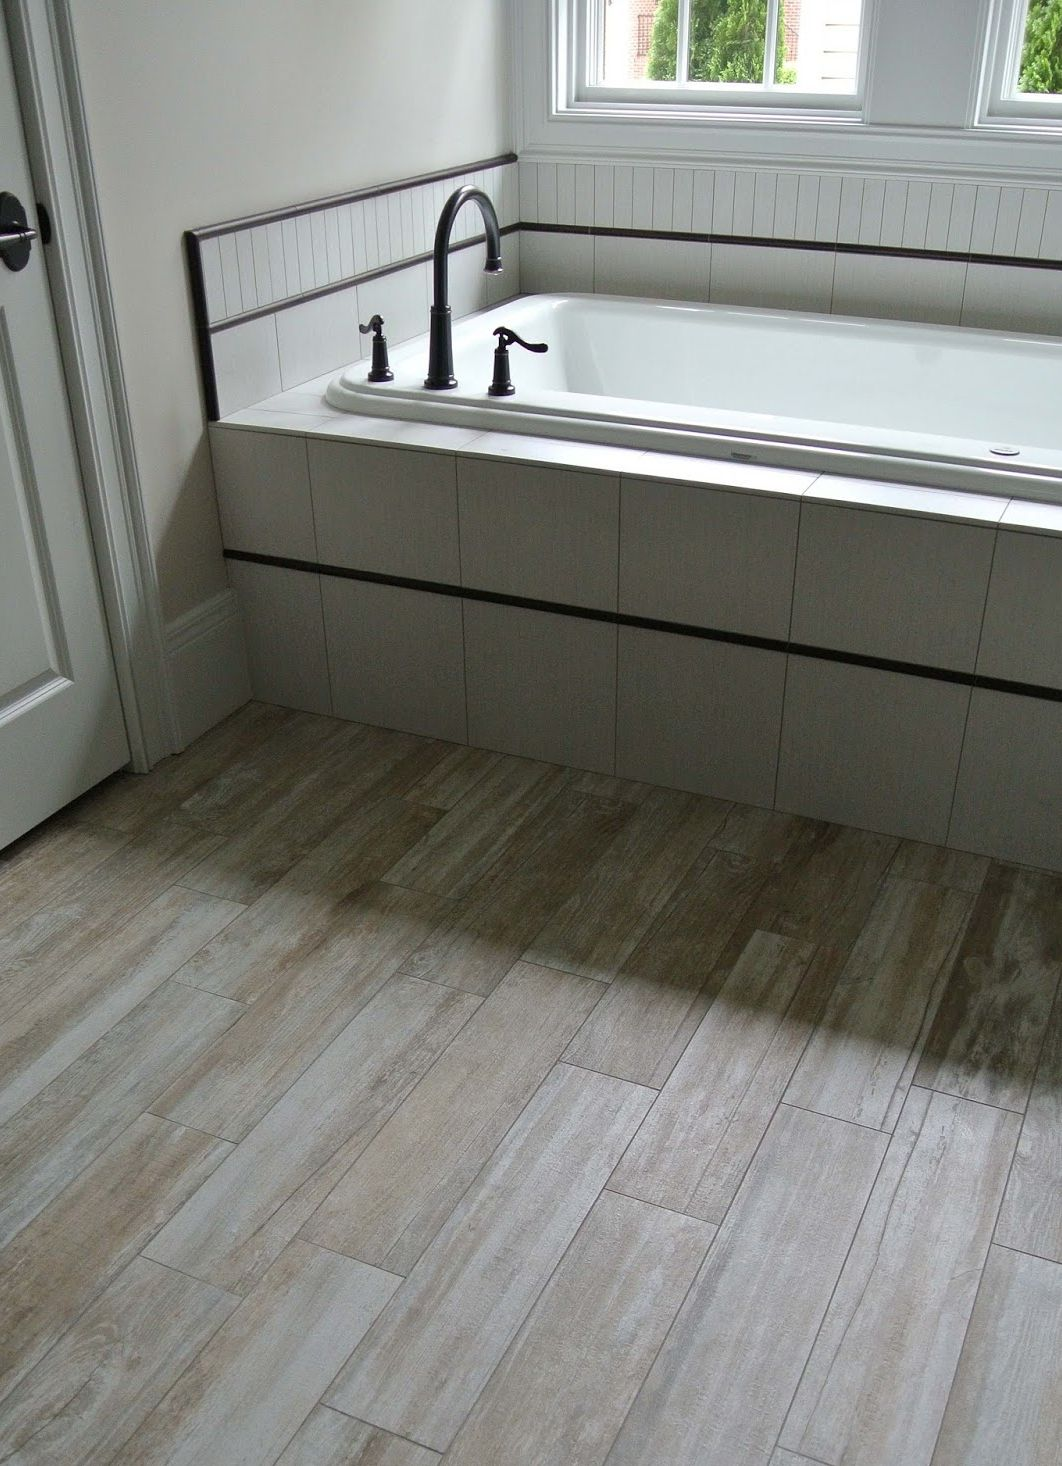 best floor tile ideas tile flooring ideas bathroom best ... TAEQKZM